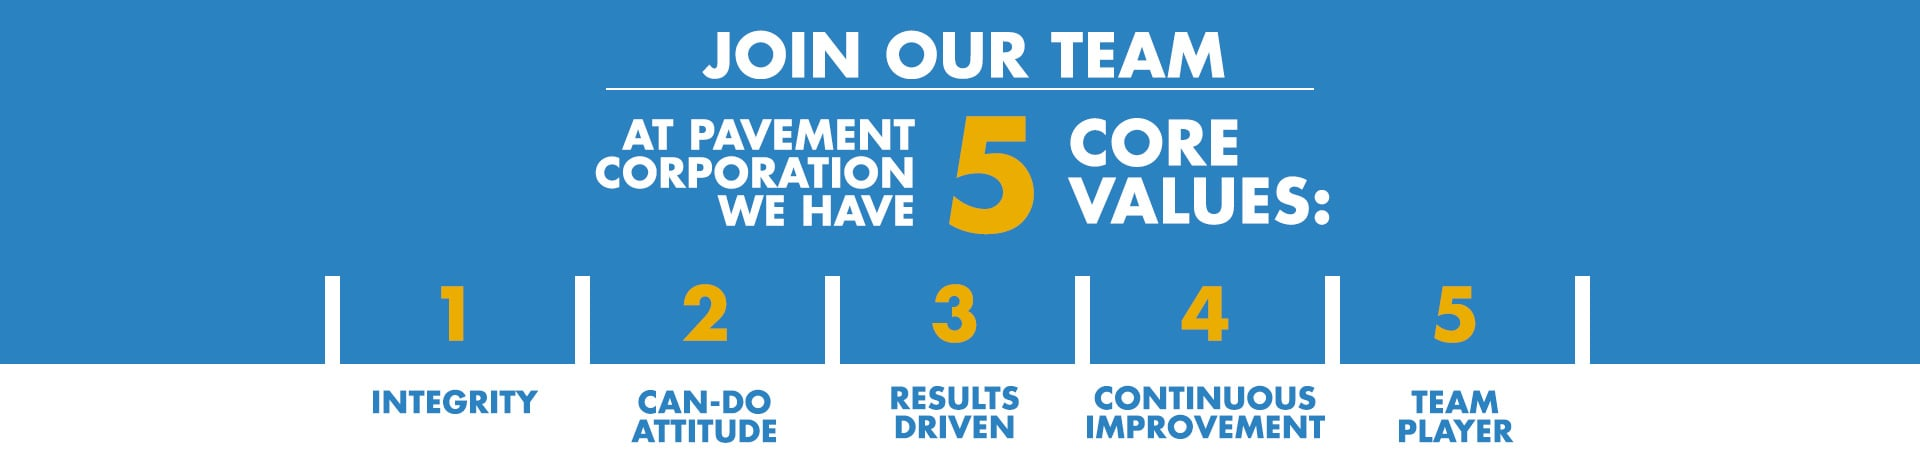 5 Core Values at Pavement Corporation